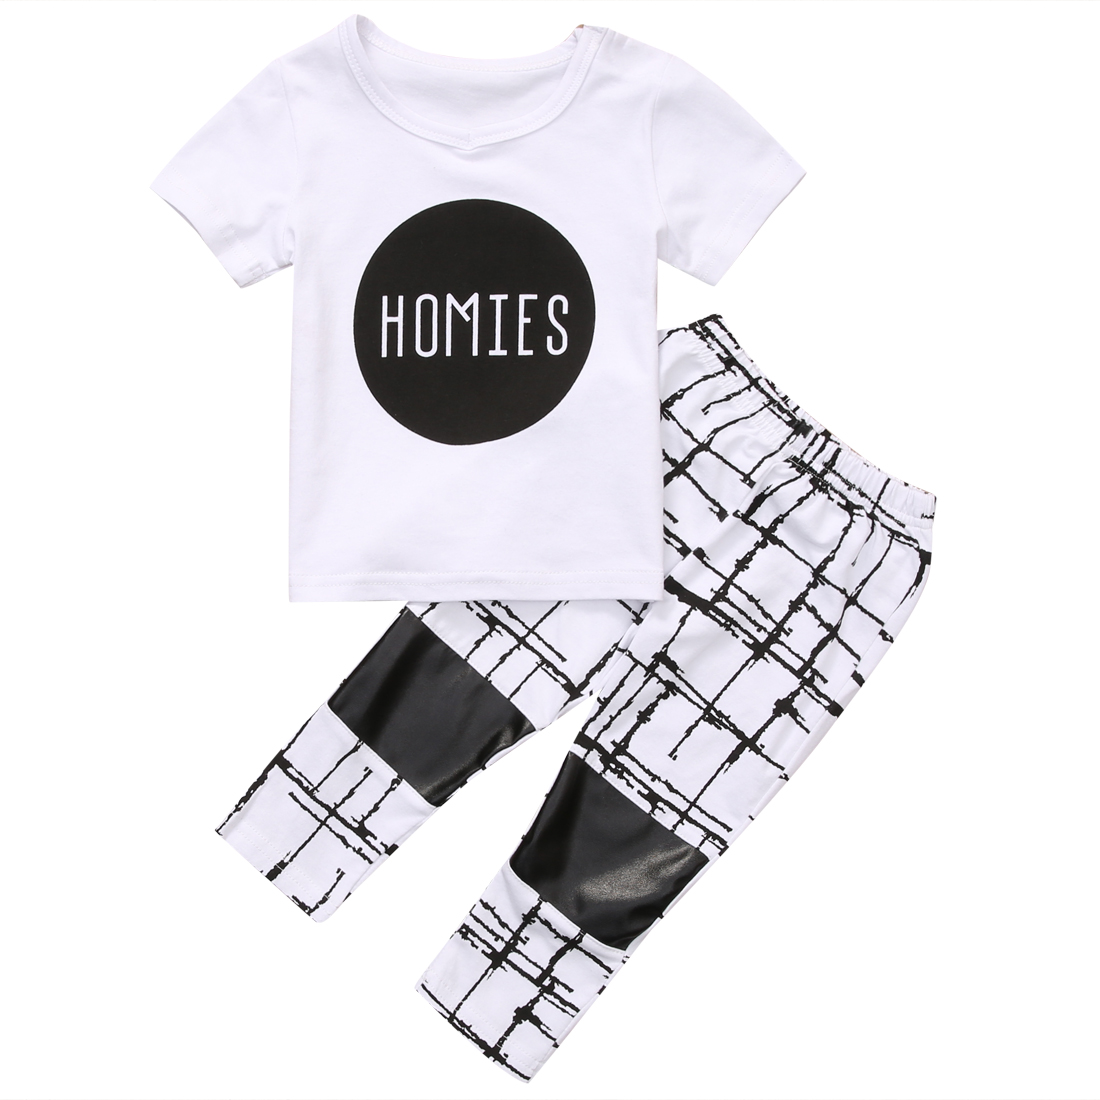 2017 Fashion Toddler Kids Baby Boy Girl Clothes Summer Short Sleeve HOMIES T shirt Tops Pant